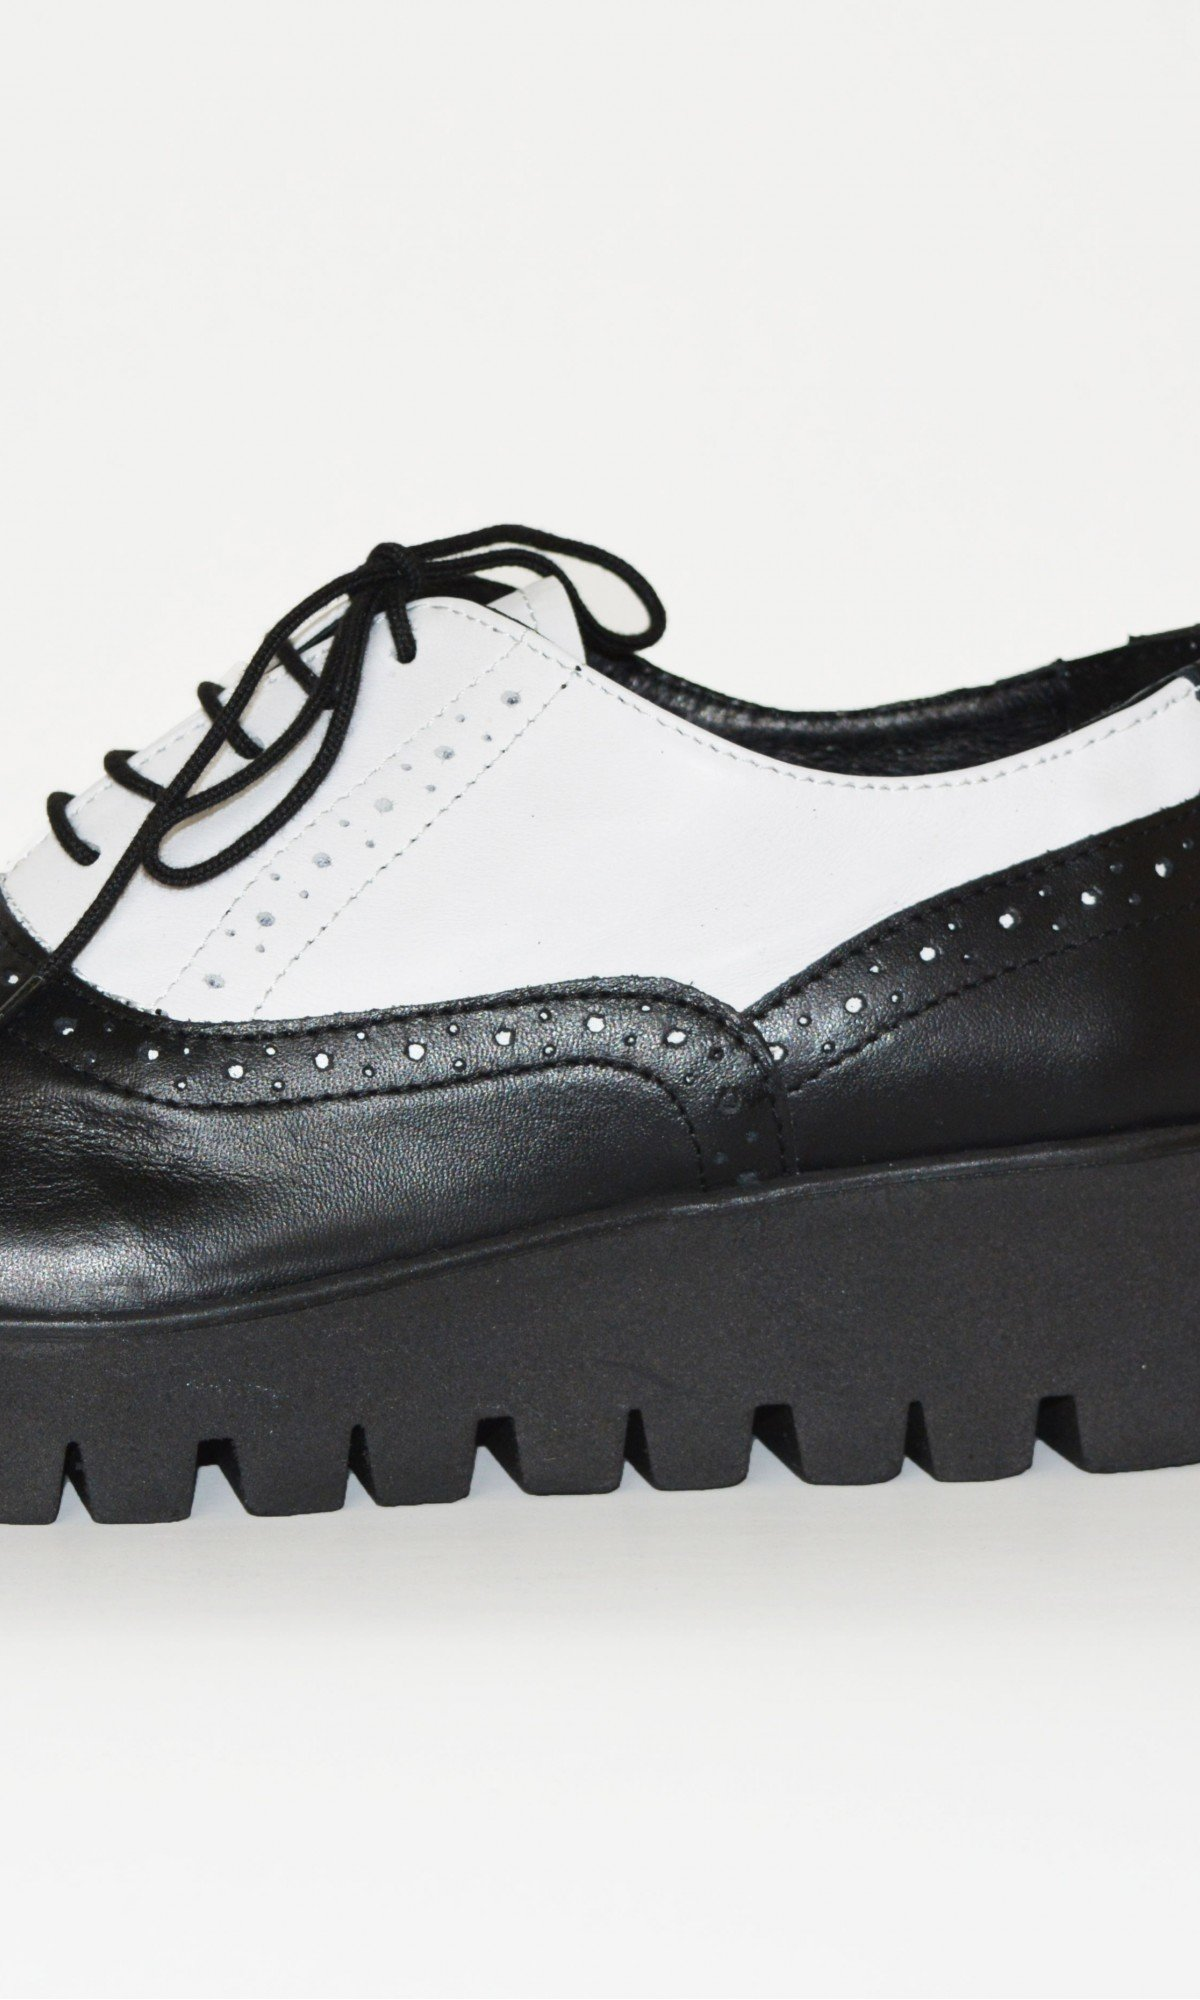 Black and White Oxford Genuine Leather Shoes A15215